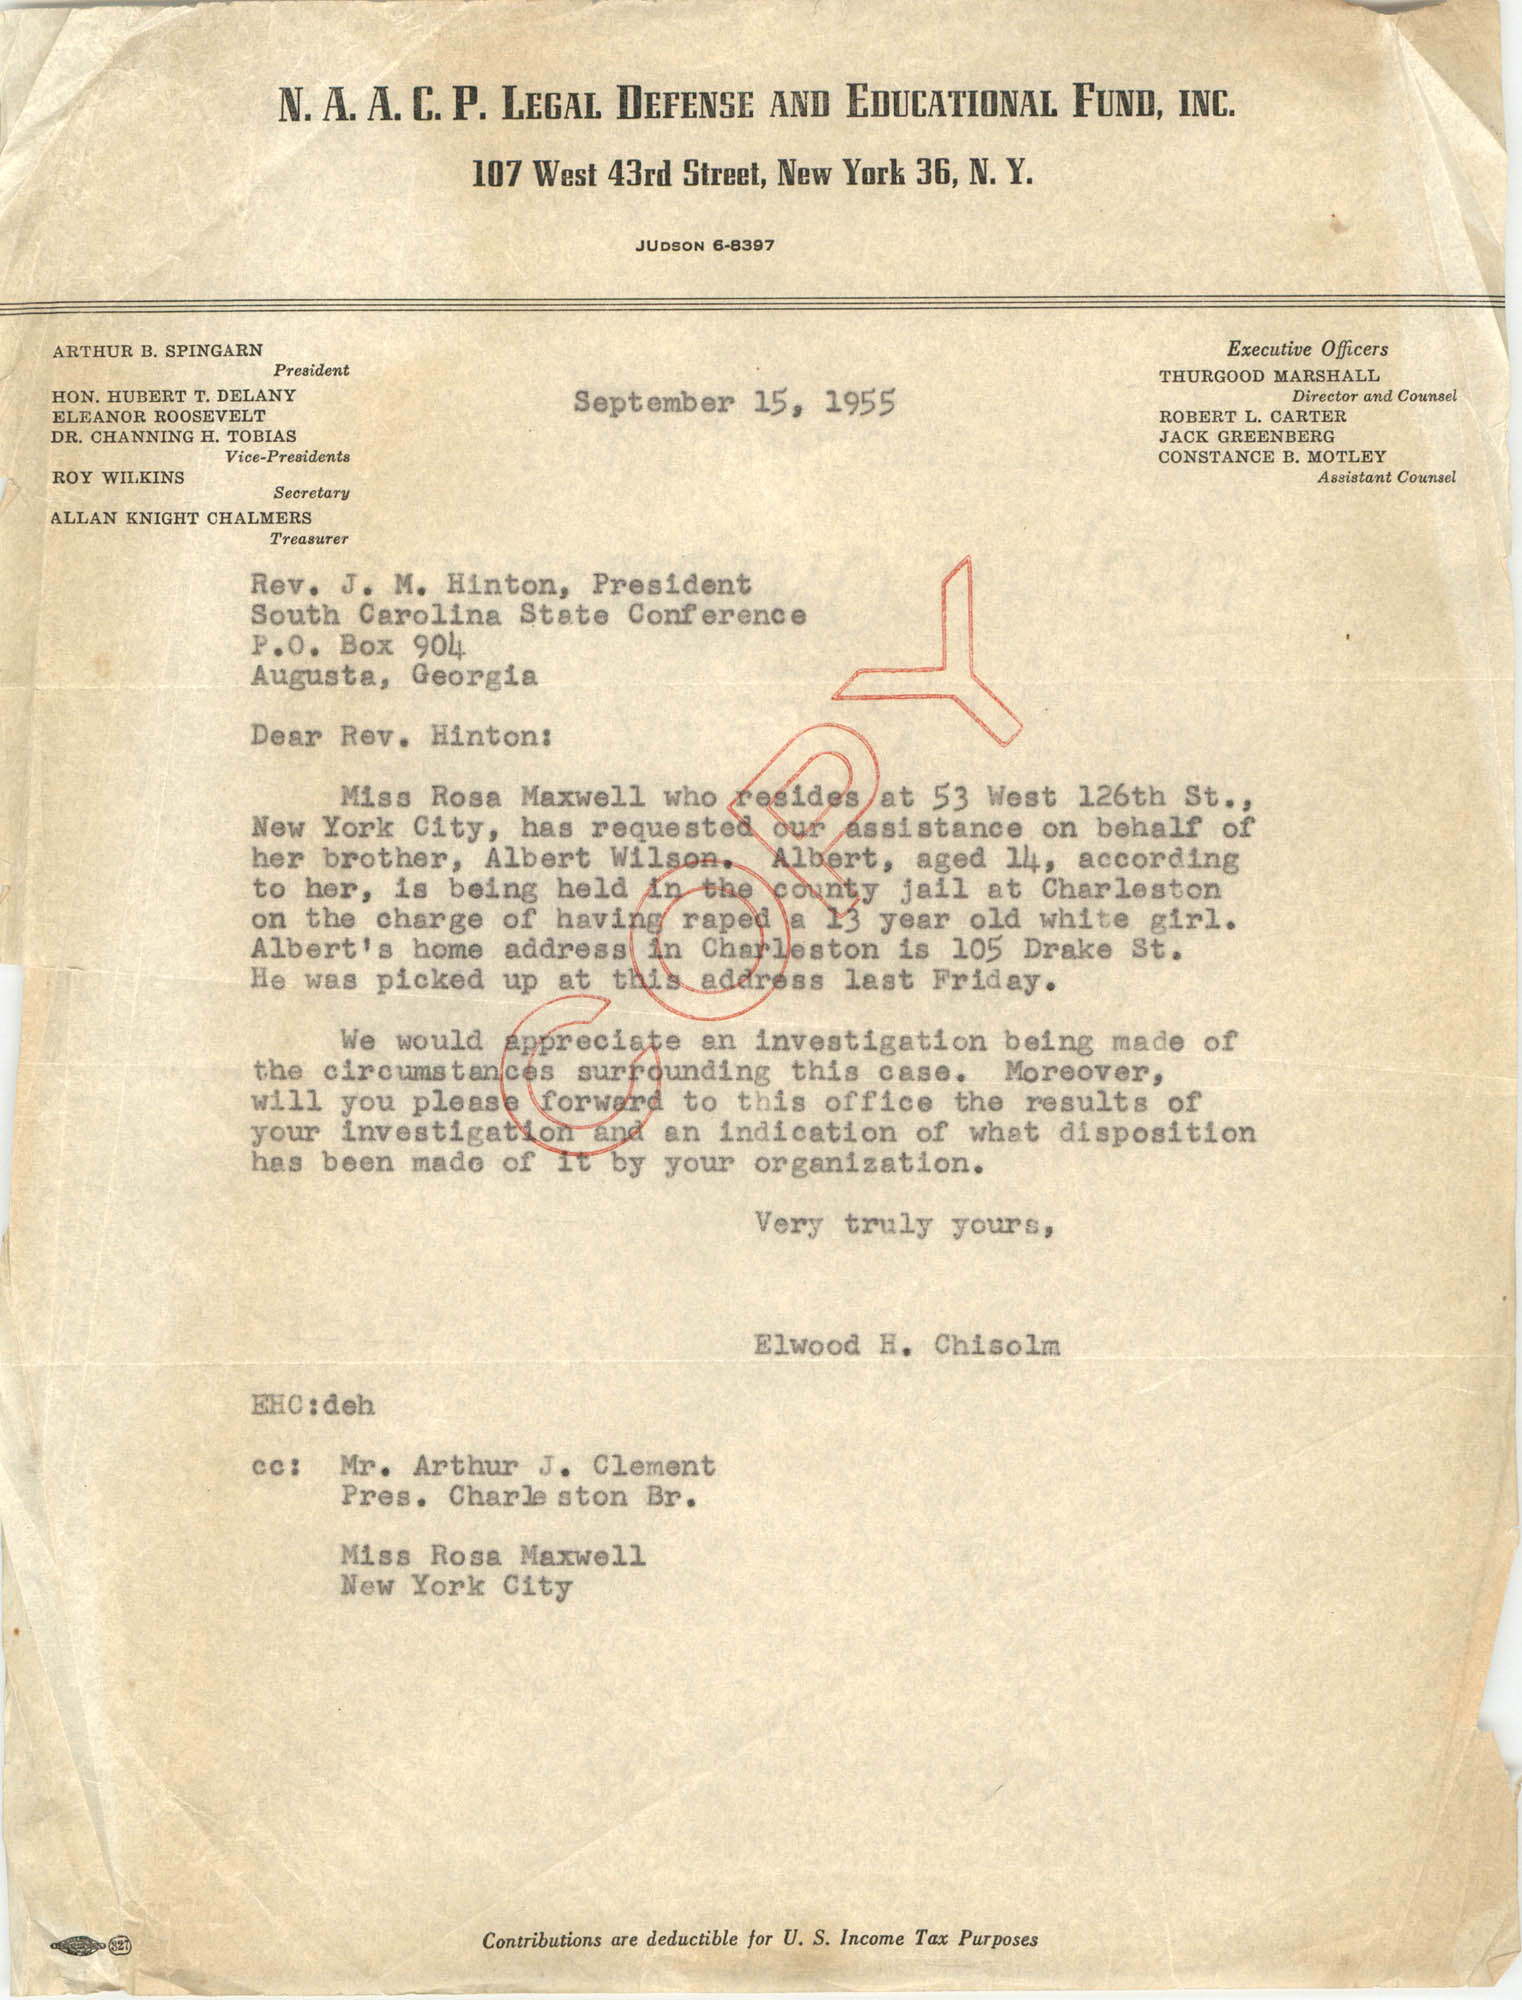 Letter from Elwood H. Chisolm to J. M. Hinton, September 15, 1955